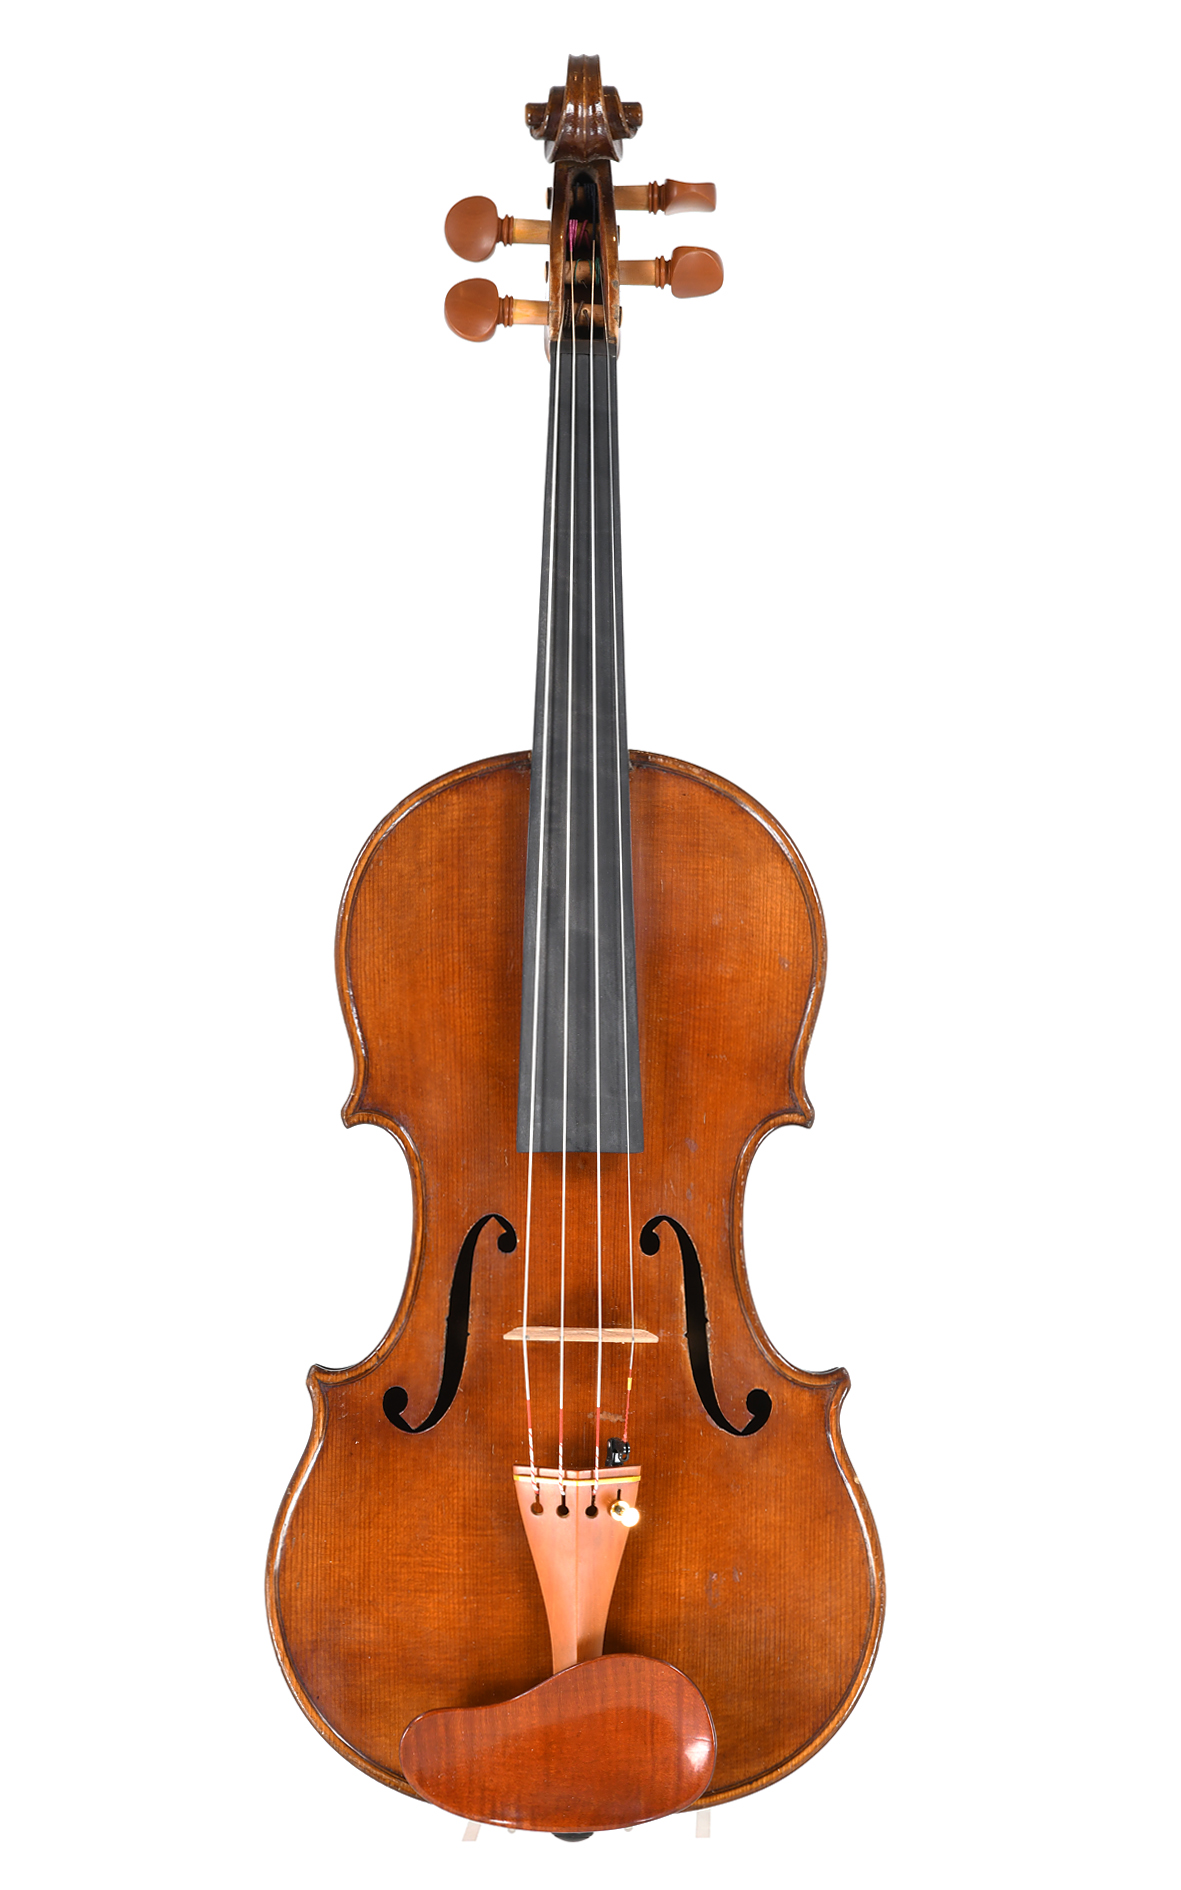 Student violin from Saxony, after Guarnerius